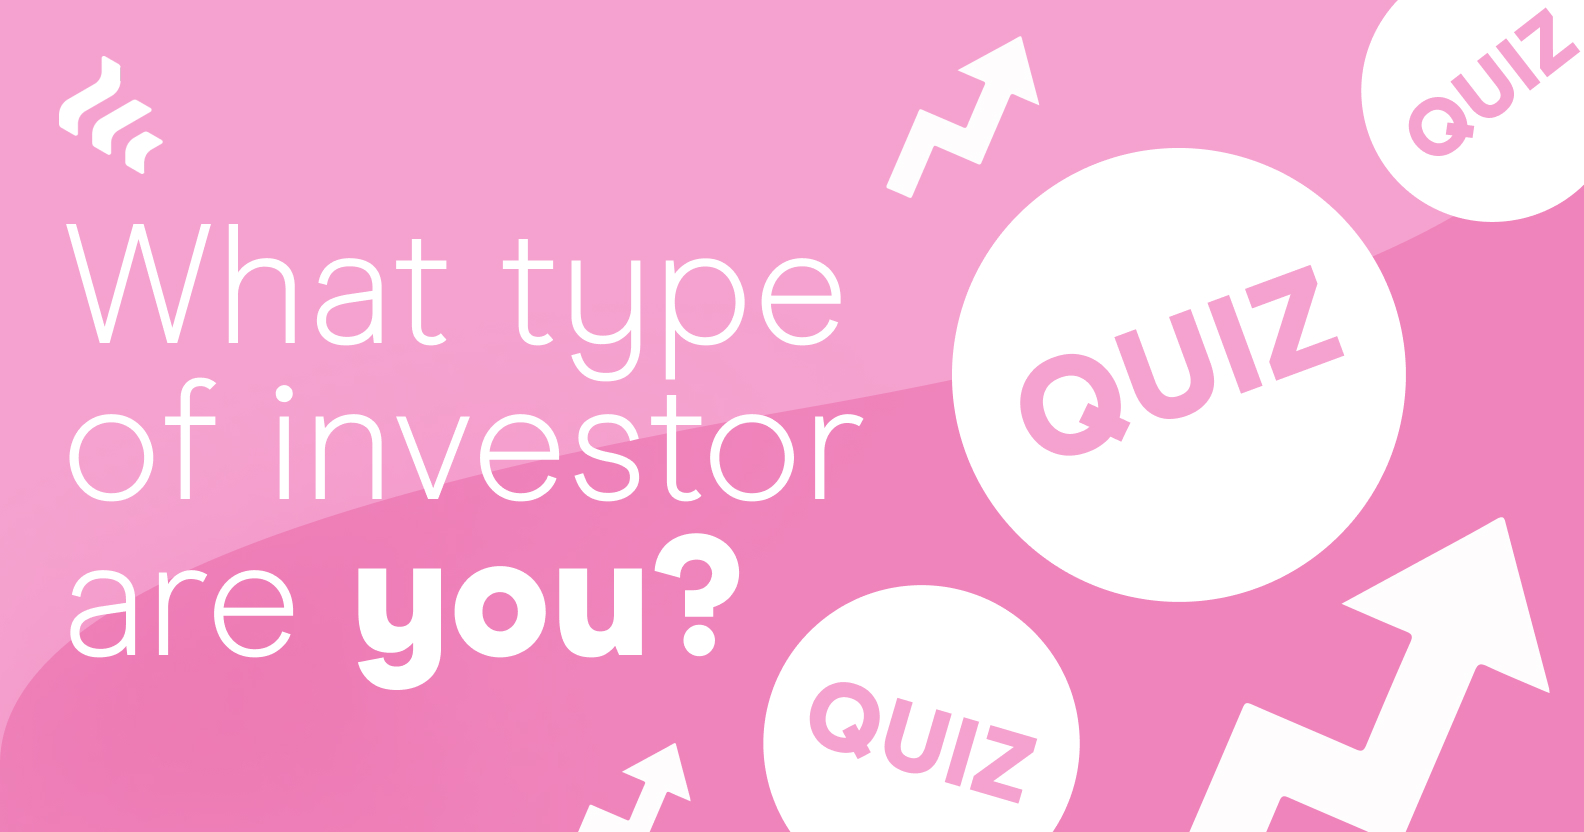 Buzzfeed SPAC listing: what type of investor are you?